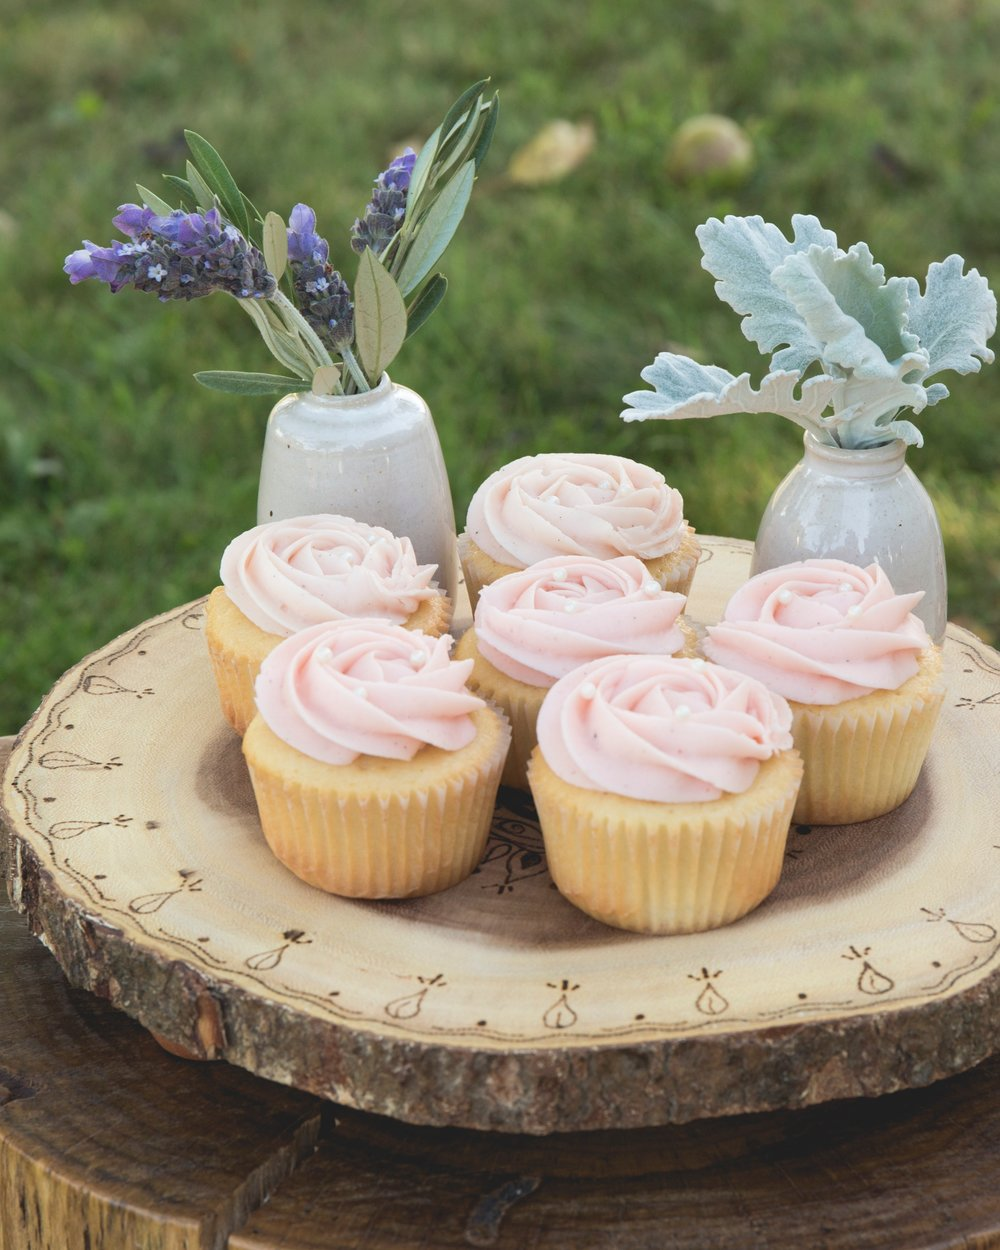 Cupcakes on wooden plate-2.jpg